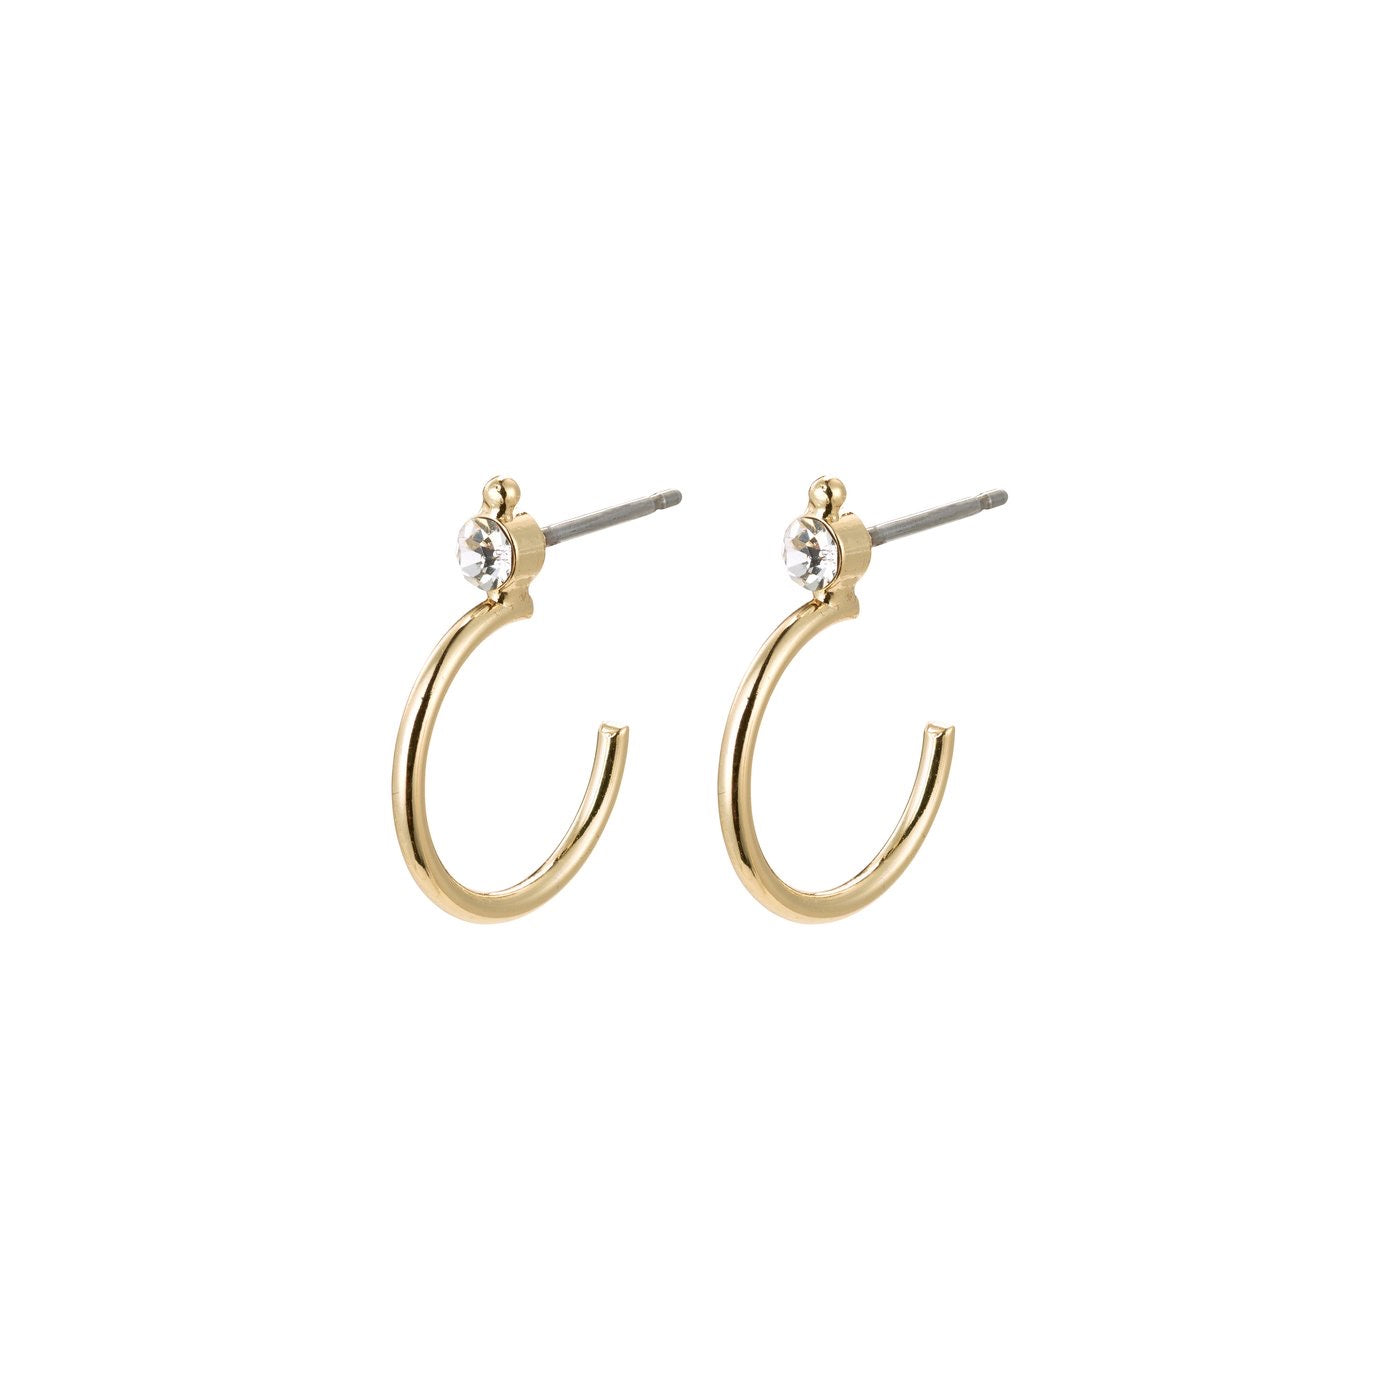 Gabrielle Earrings by Pilgrim